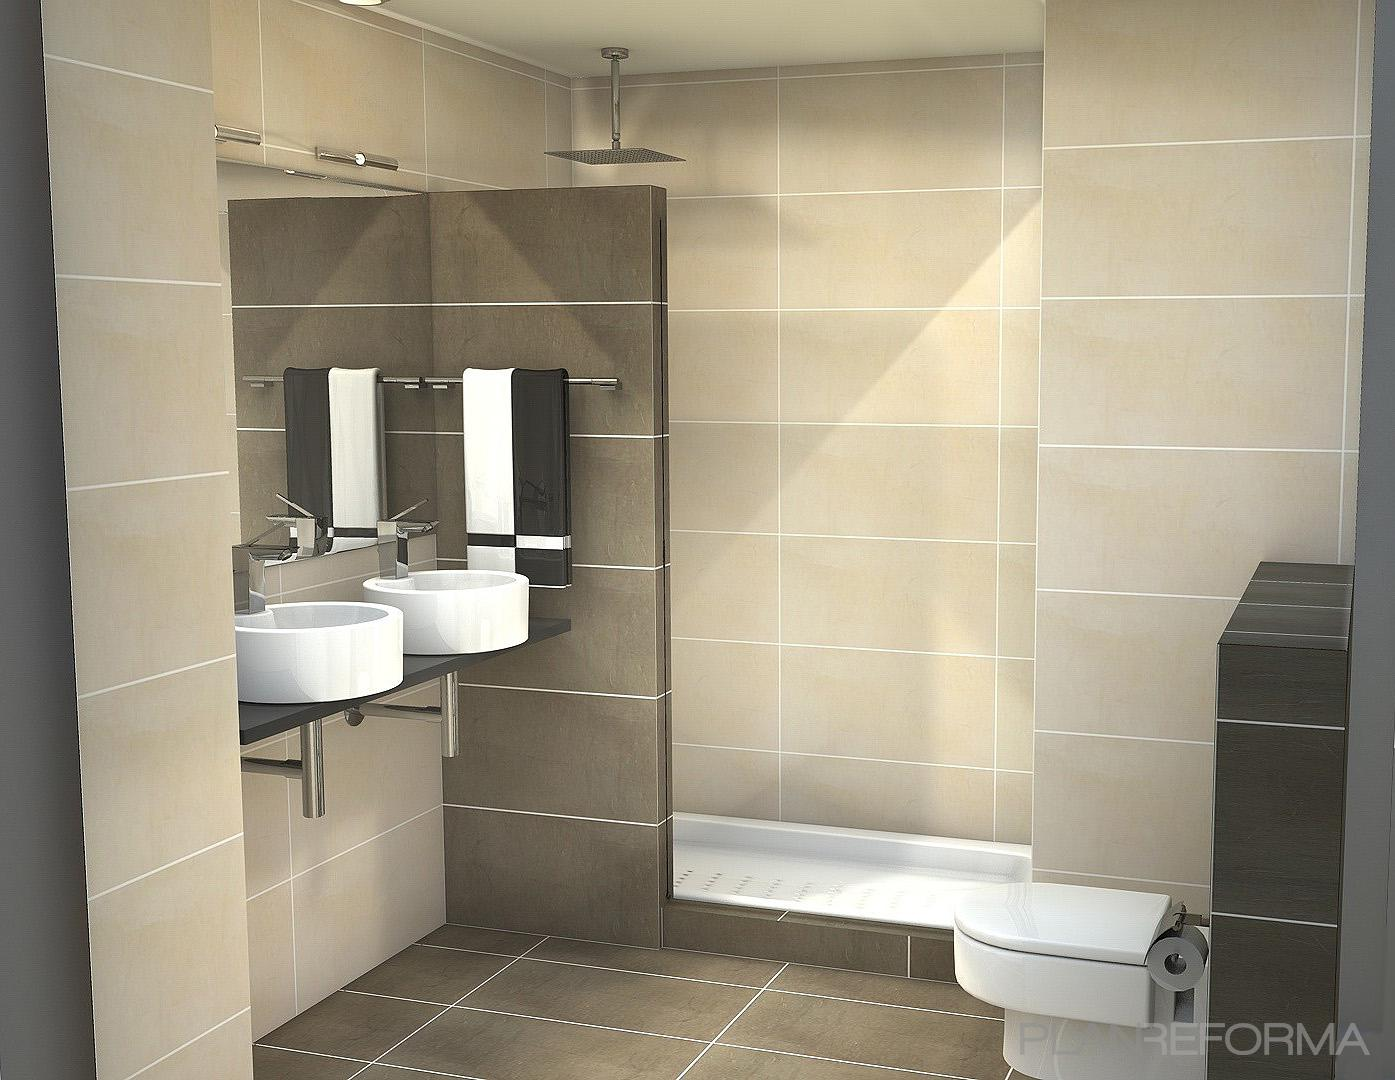 Baño, Tocador style contemporaneo color beige, marron, gris